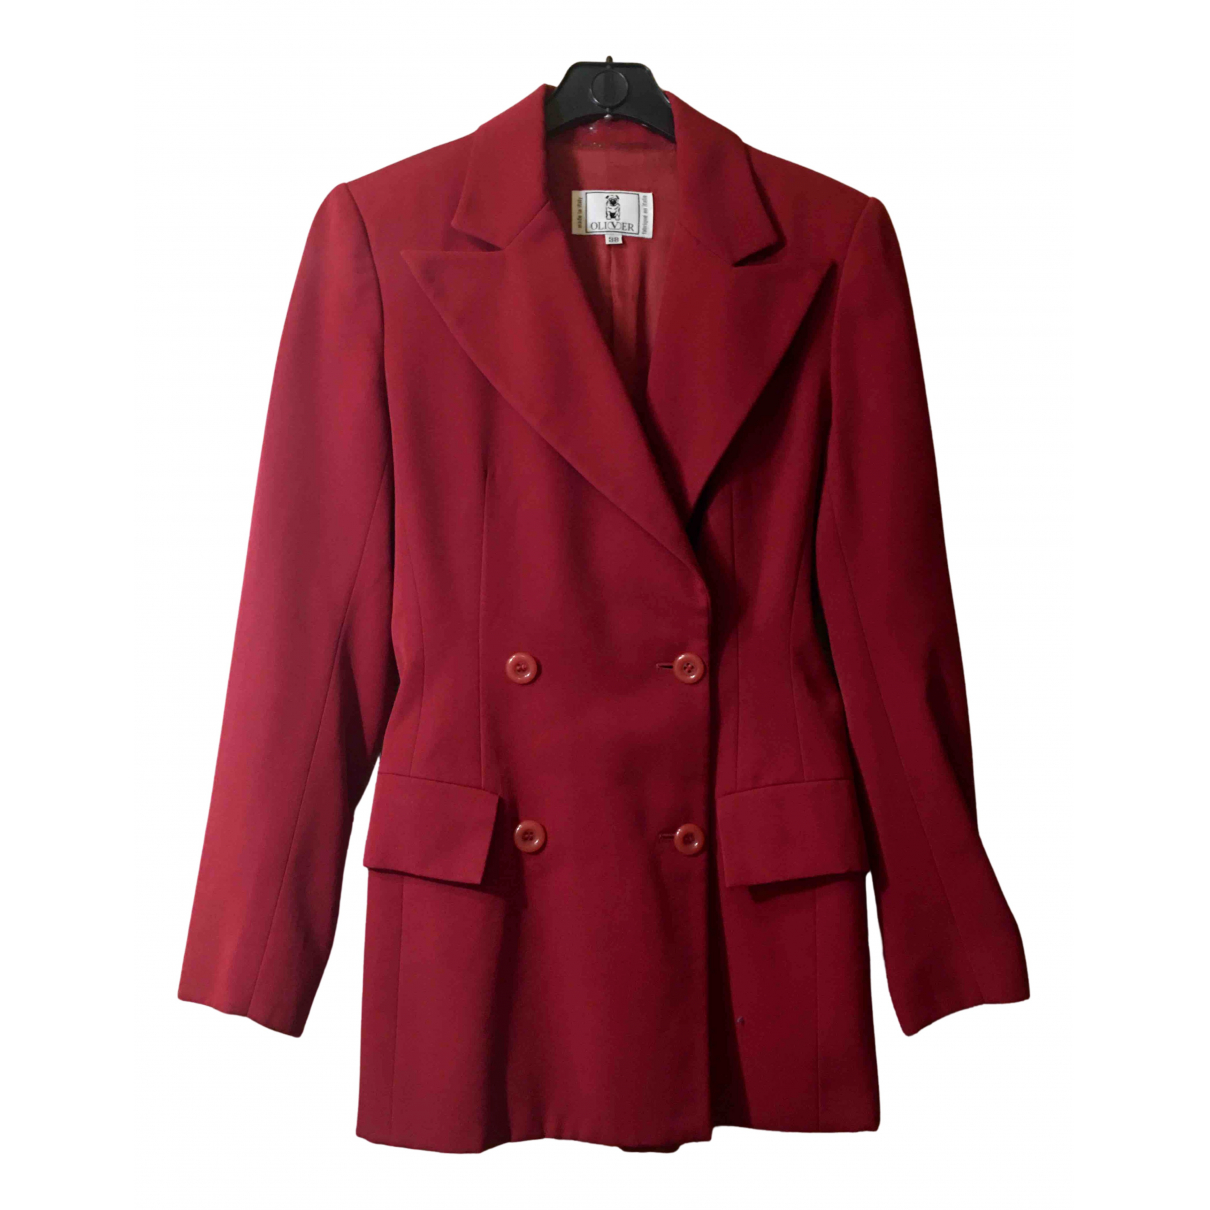 Valentino Garavani N Burgundy Wool jacket for Women 38 FR